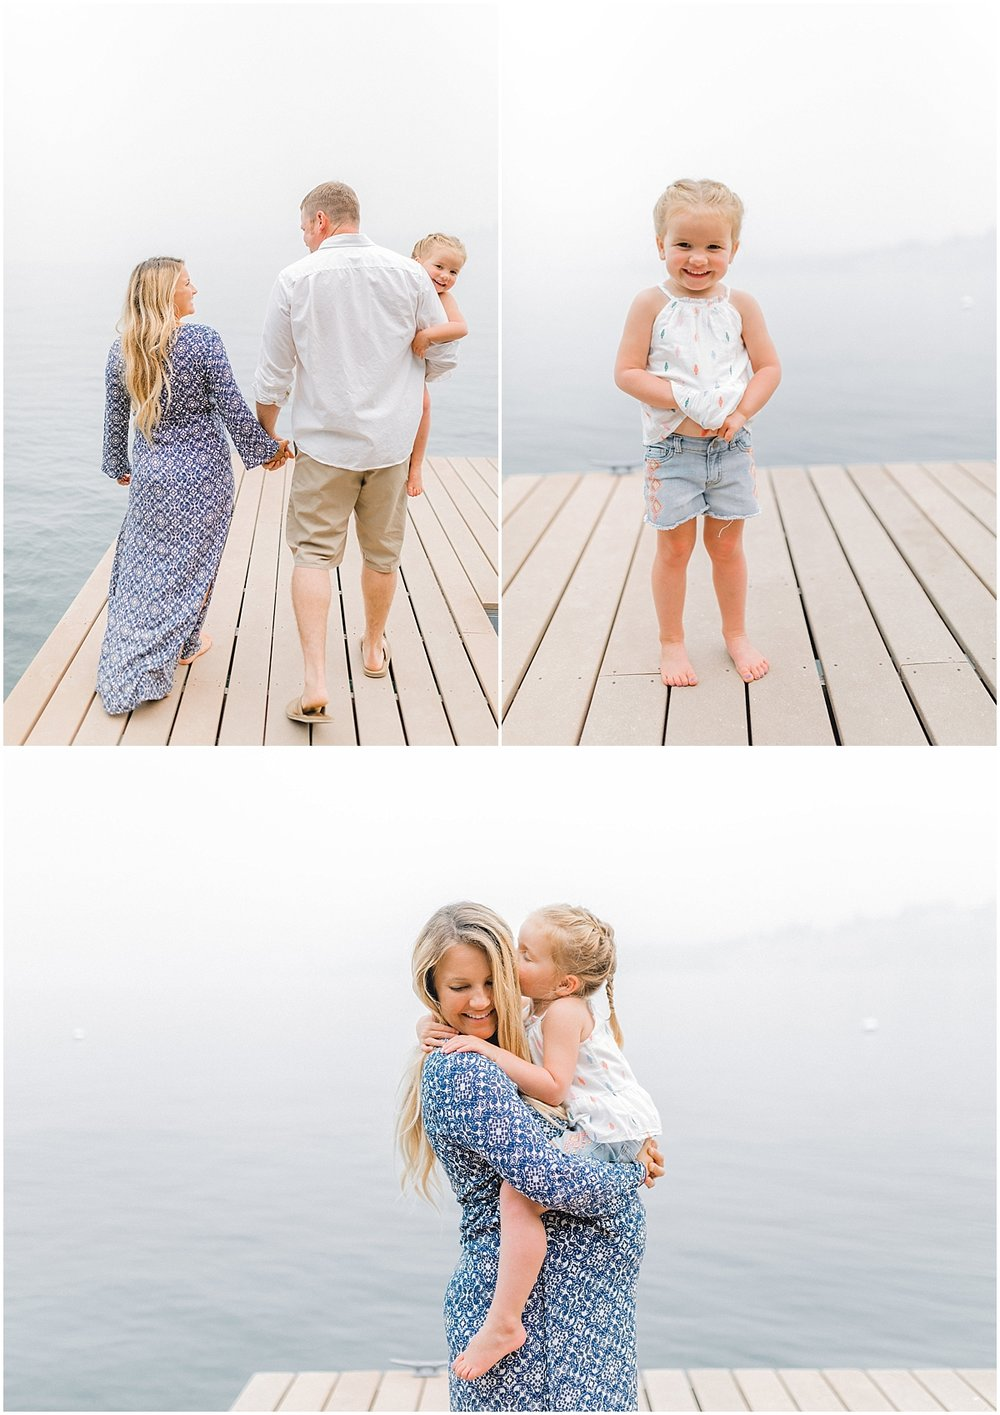 Emma Rose Company | PNW Family Portrait Photographer | Light and Airy Photography Style | What to Wear to Family Pictures | Kindred Presets | Lake Chelan Wedding Portrait Photographer_0090.jpg